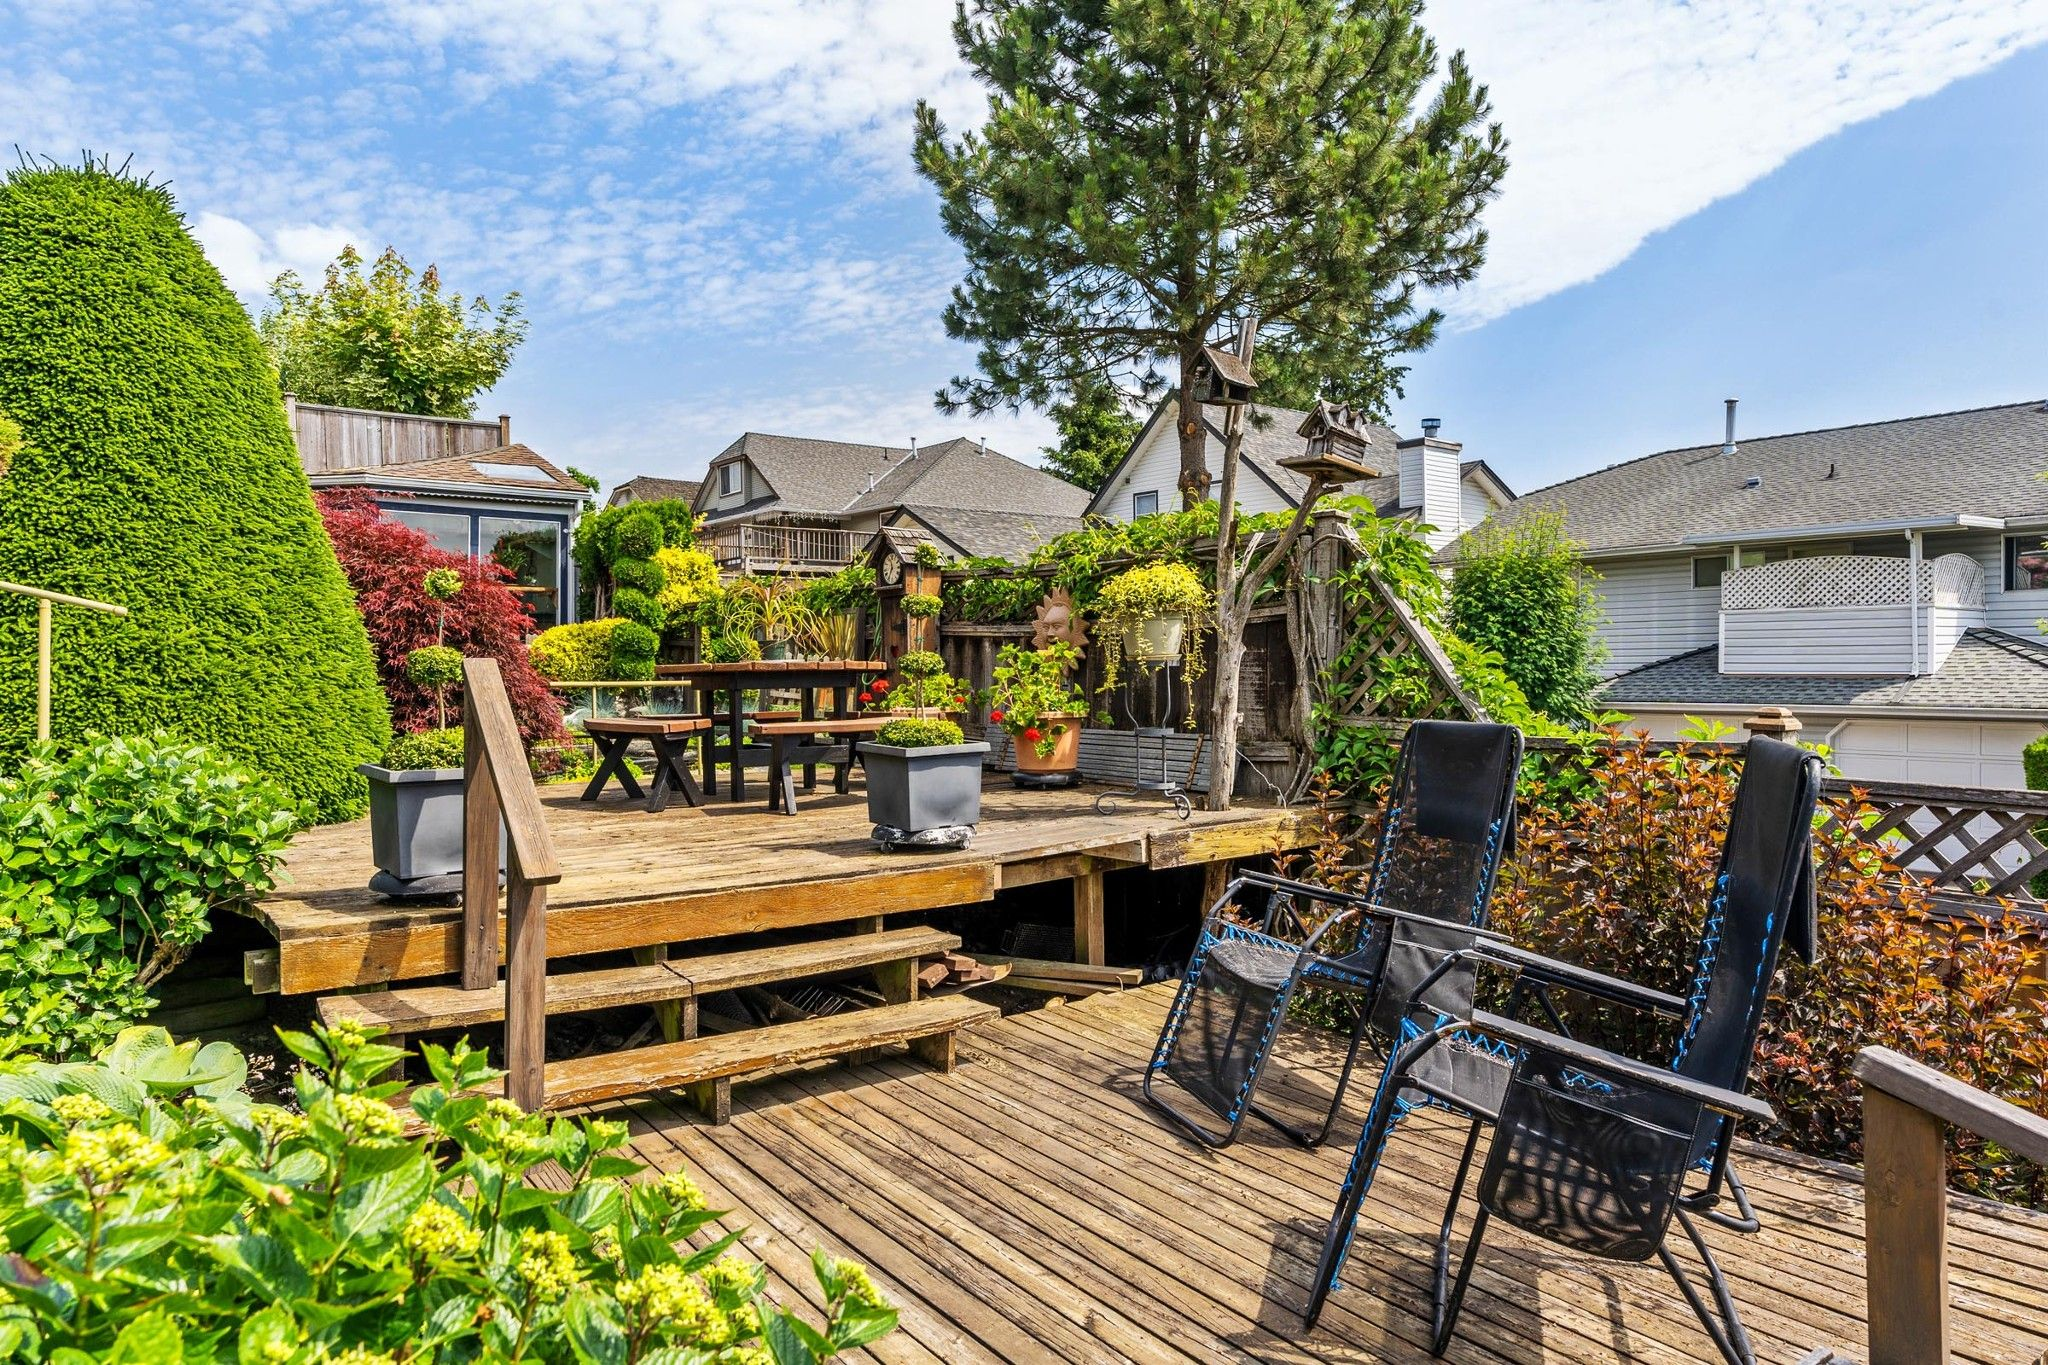 Photo 34: Photos: 6192 191A Street in Surrey: Cloverdale BC House for sale (Cloverdale)  : MLS®# R2279041